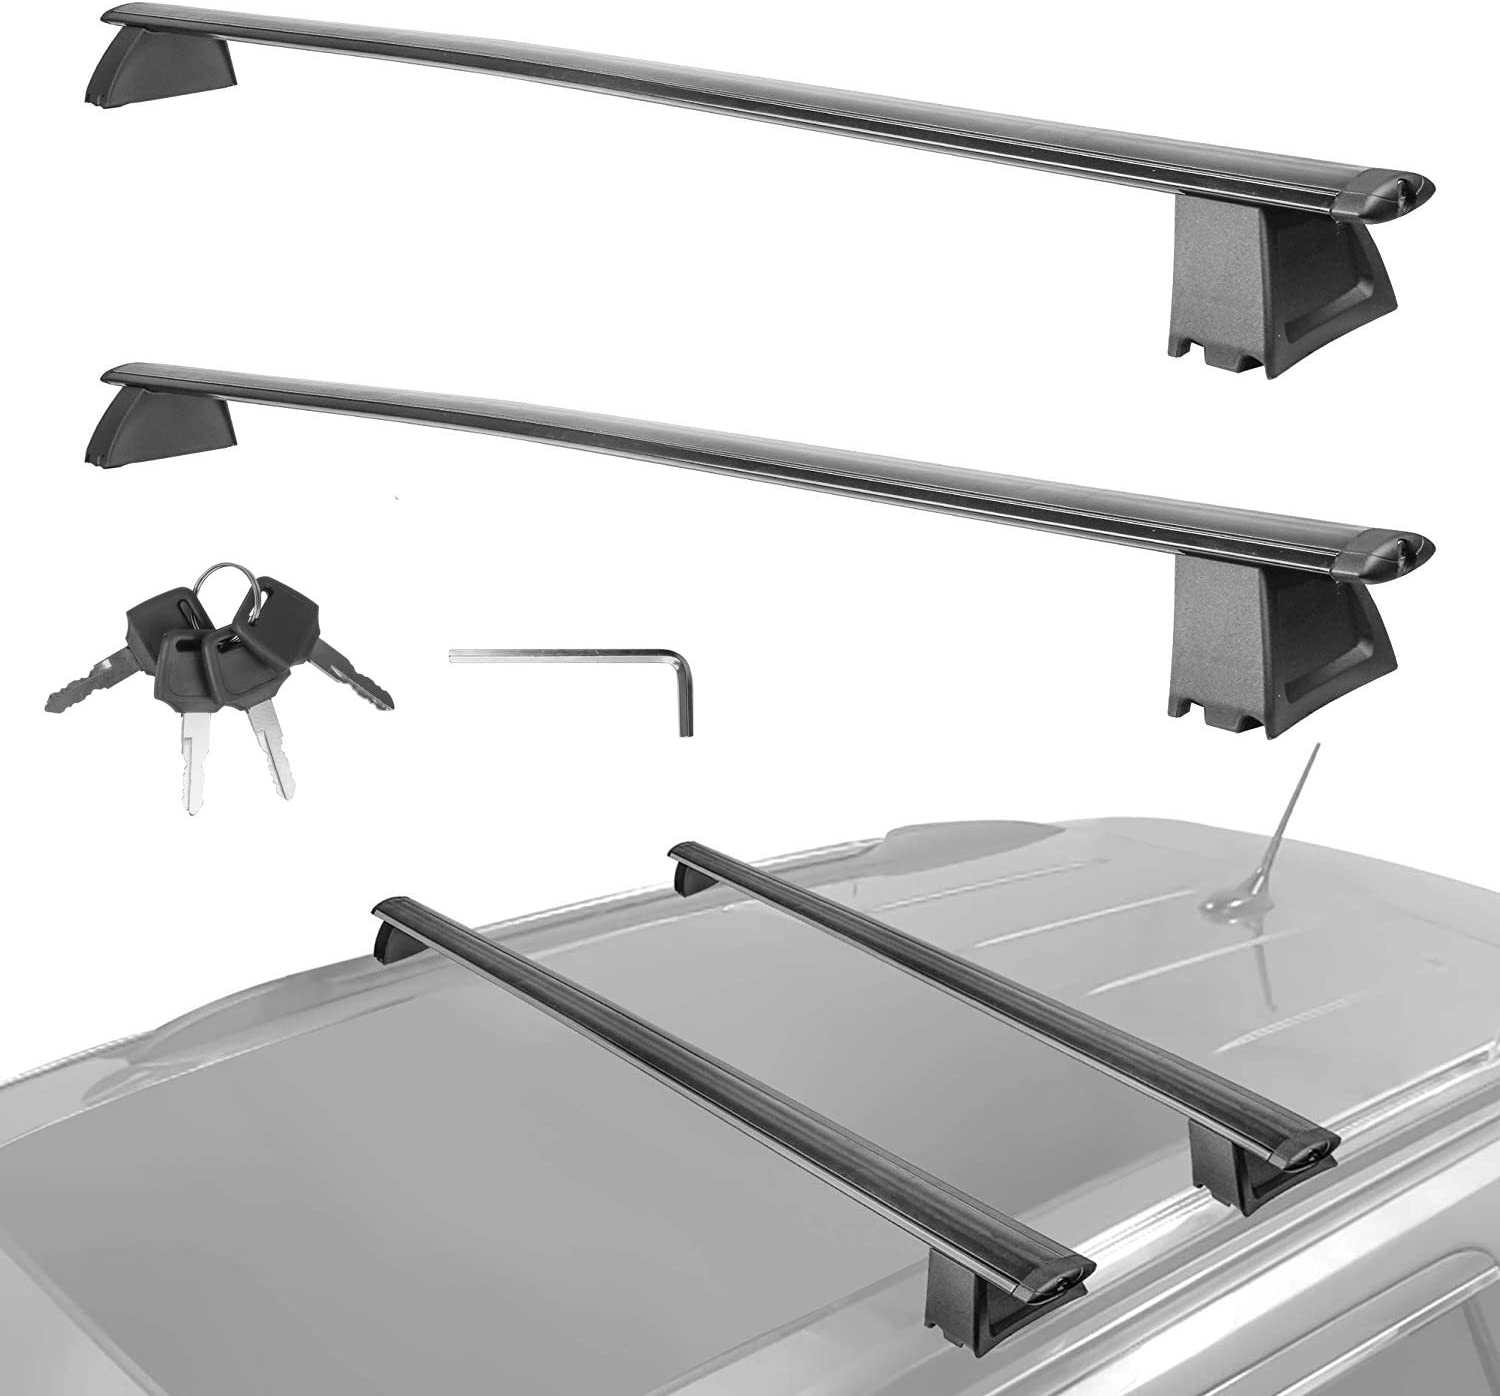 Not fit SRT /& Altitude Models MOSTPLUS New Roof Rack Cross Bar Rail for Jeep Grand Cherokee with Side Rails 2011 2012 2013 2014 2015 2016 2017 2018 2019